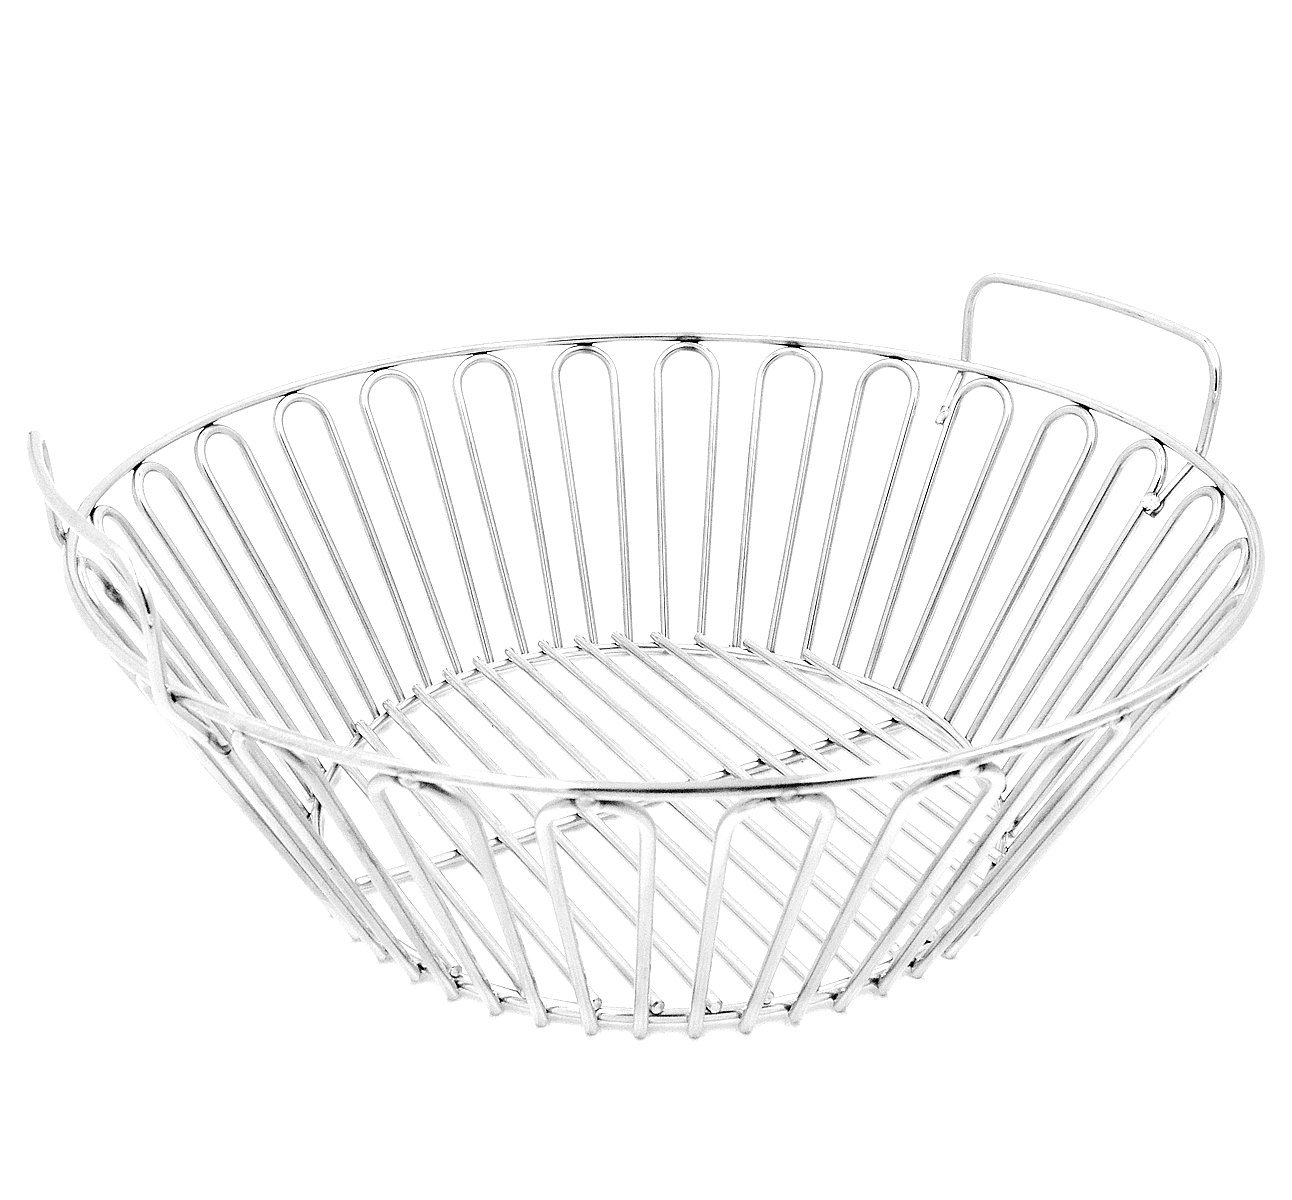 RunTo 13.5 inch Charcoal Ash Basket Fits for Large Big Green Egg Grill, Kamado Joe Classic, Pit Boss, Louisiana Grills,Primo Kamado Grill and Large BGE by RunTo